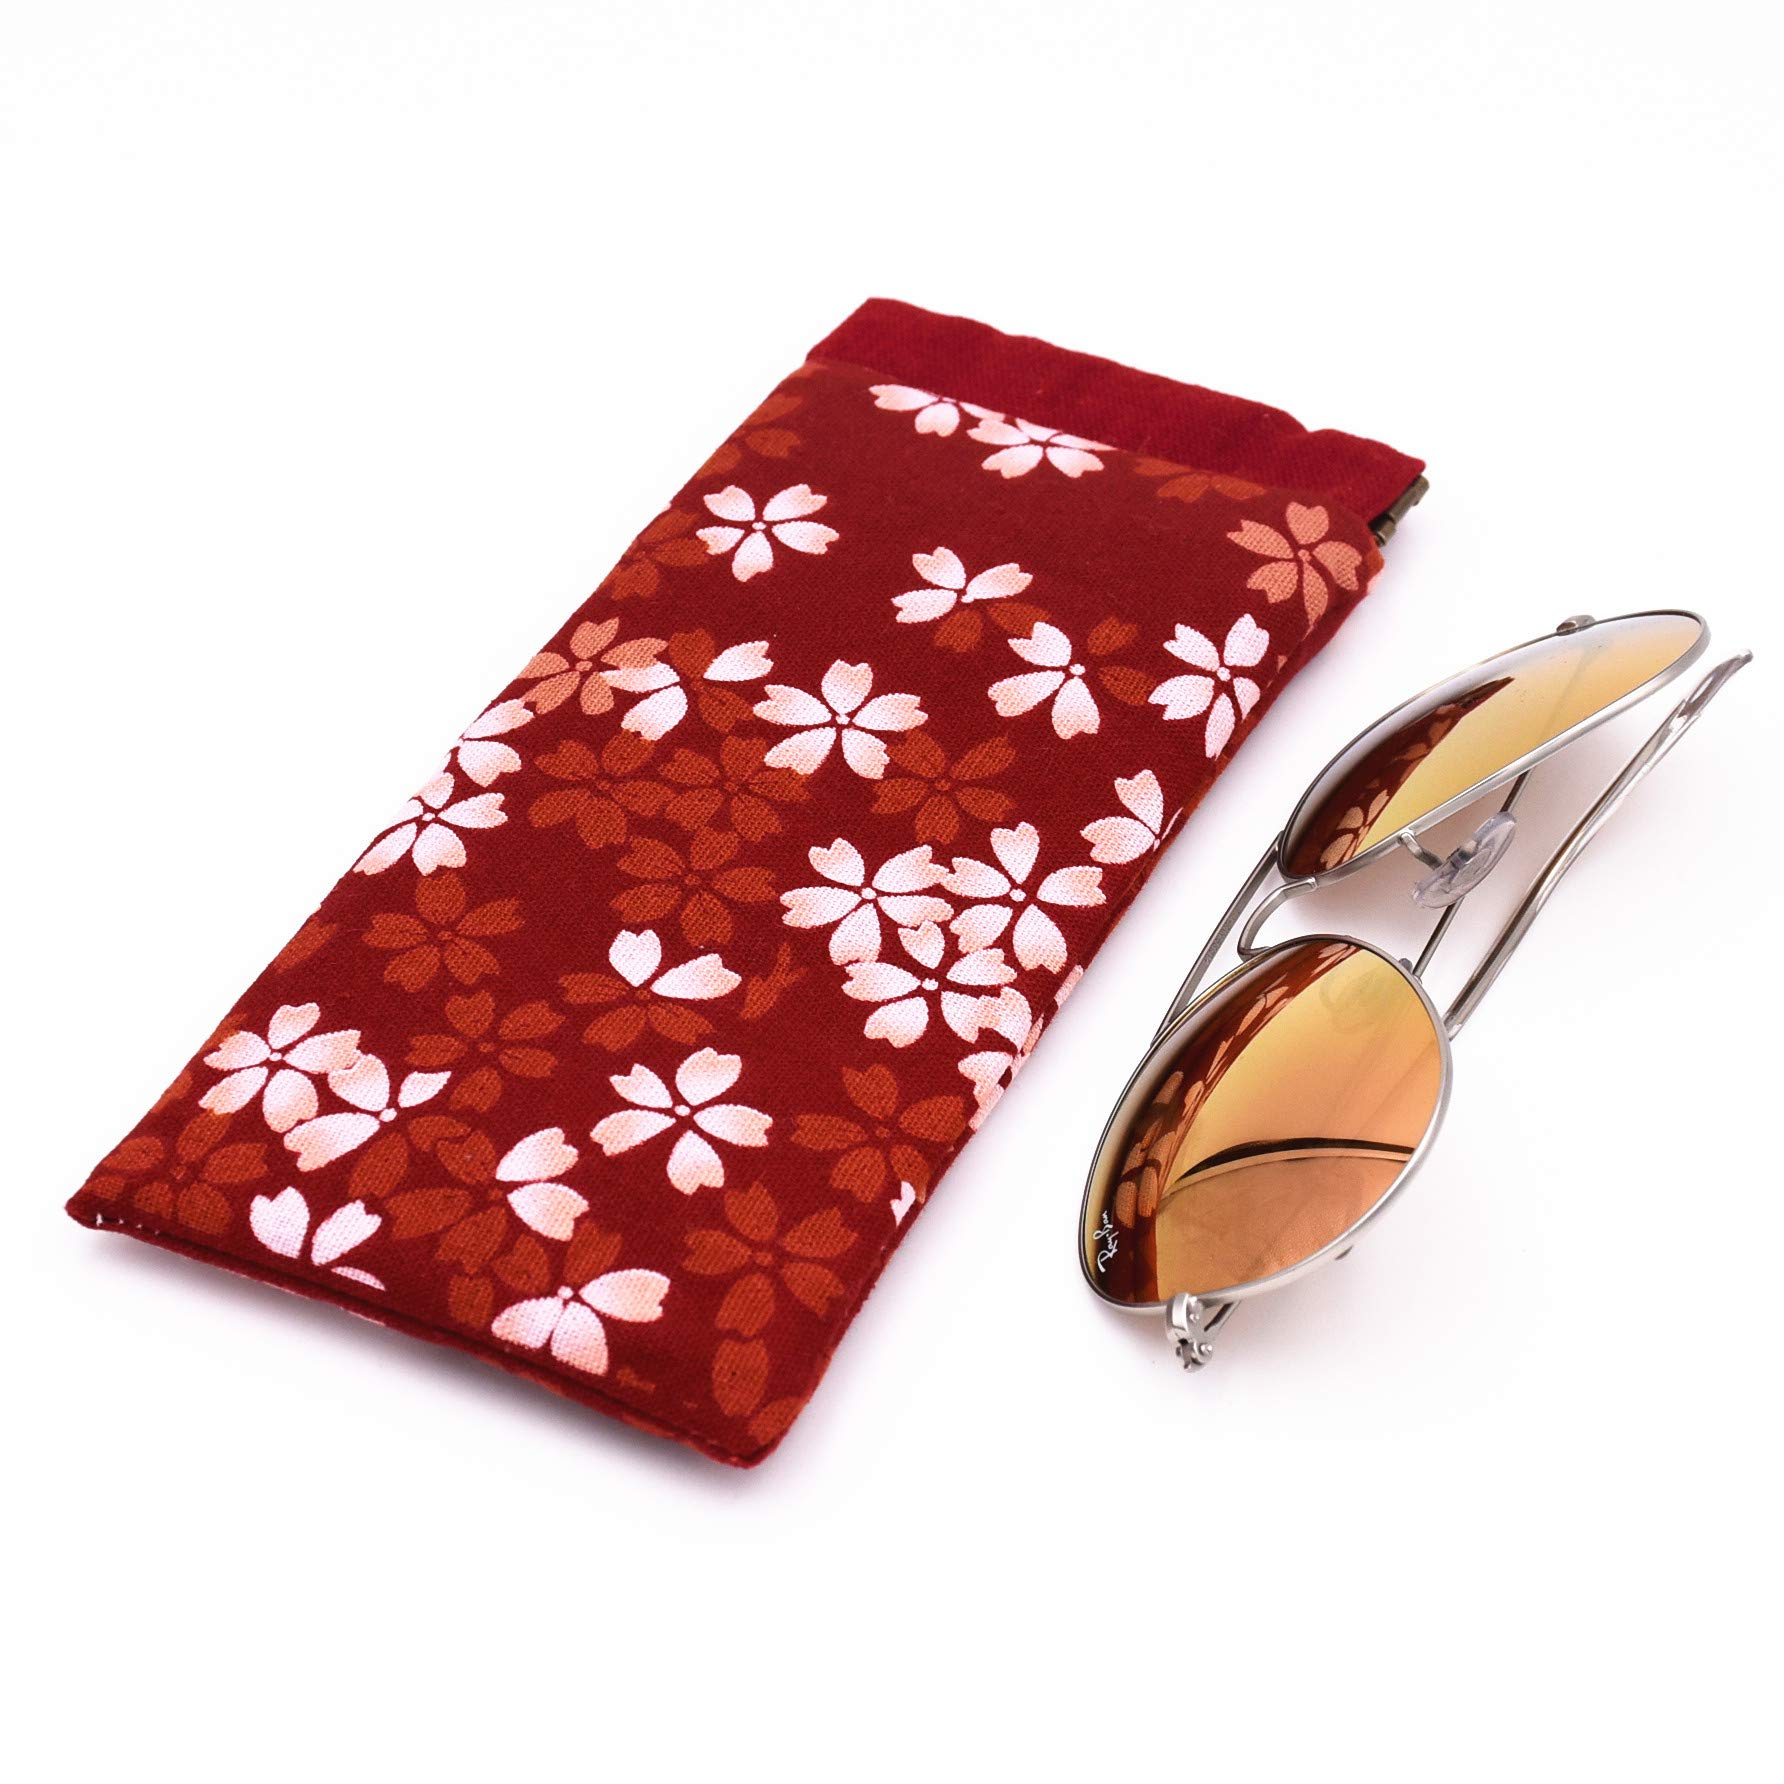 Eyeglass Cases Cotton Eyeglasses Pouch Sunglasses bag with Spring Clip (Sakula 2 PCS) by GGT (Image #3)